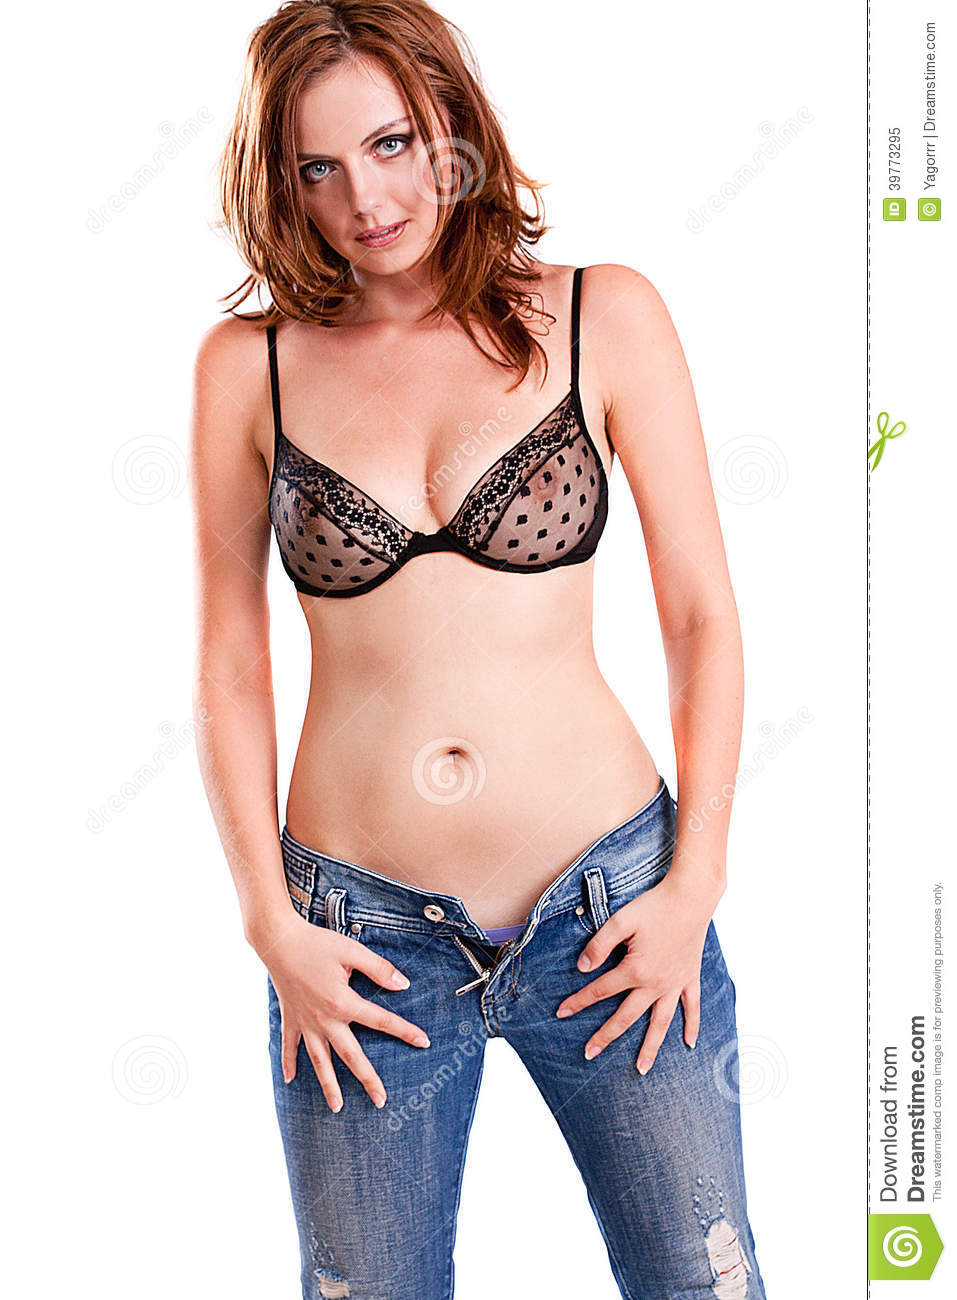 Beautiful Girl Jeans Young Bra Isolated White Background Teen Beauty Pics Depositphotos